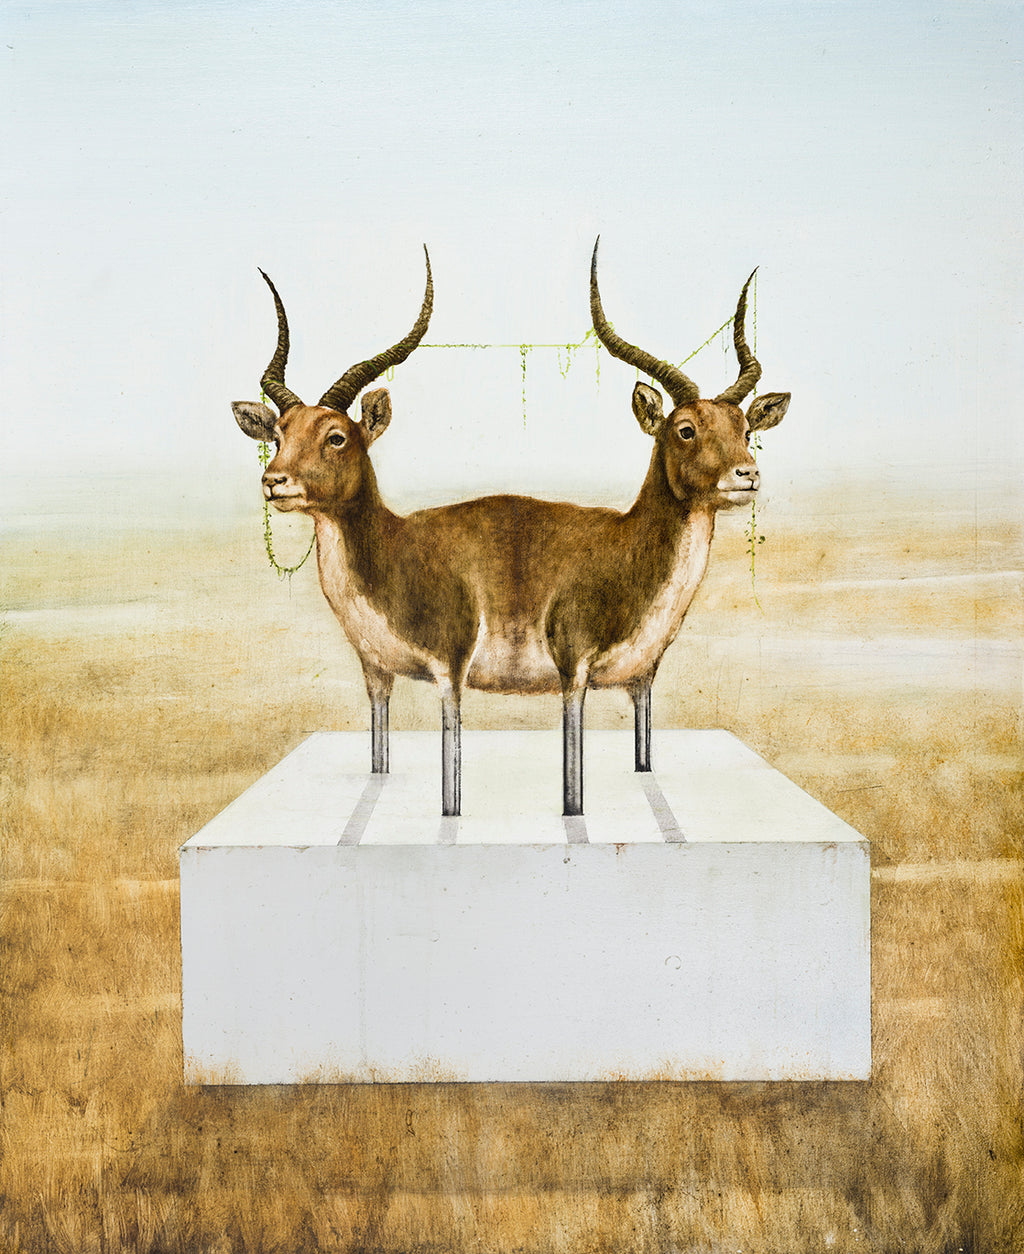 Kevin Earl Taylor - Two Headed Gazelle Print